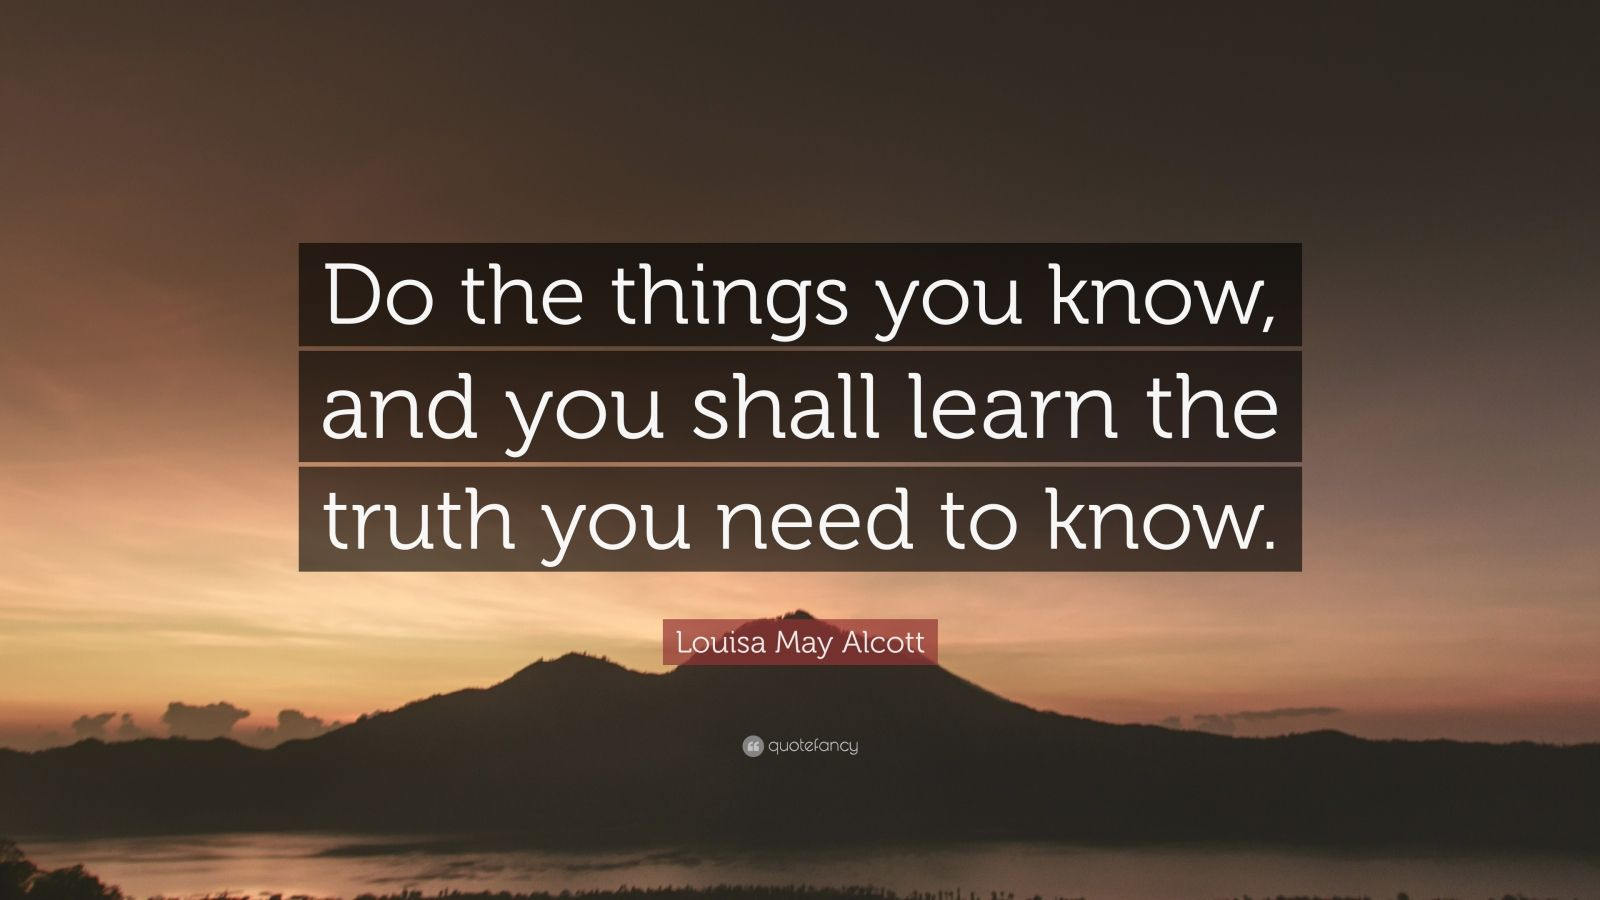 """Louisa May Alcott Quote: """"Do the things you know, and you shall learn the truth you need to know."""""""